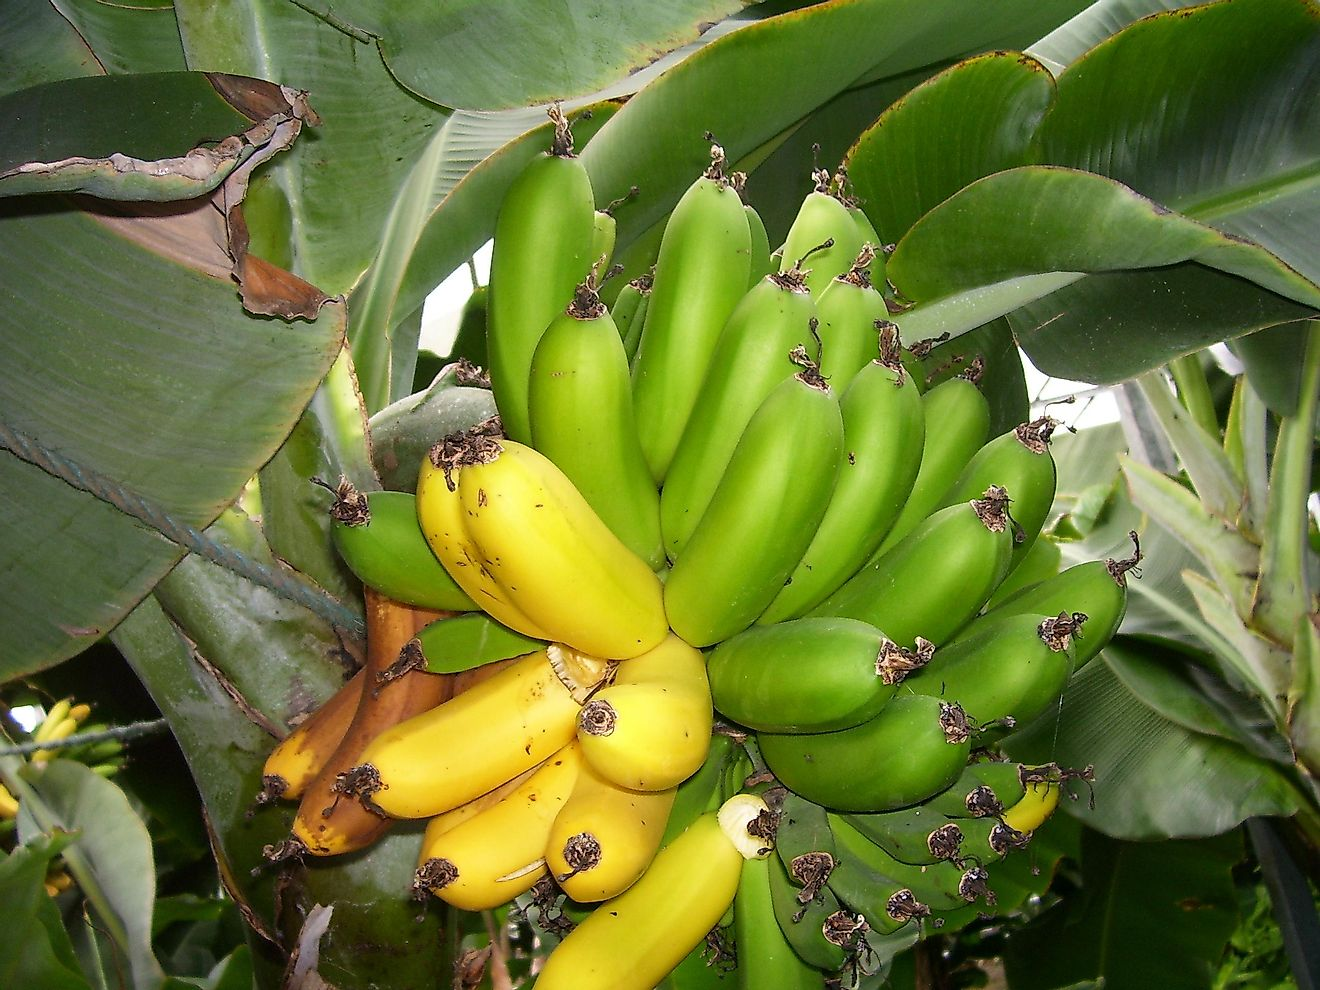 Banana cultivation requires fertile soil and a warm, humid climate.